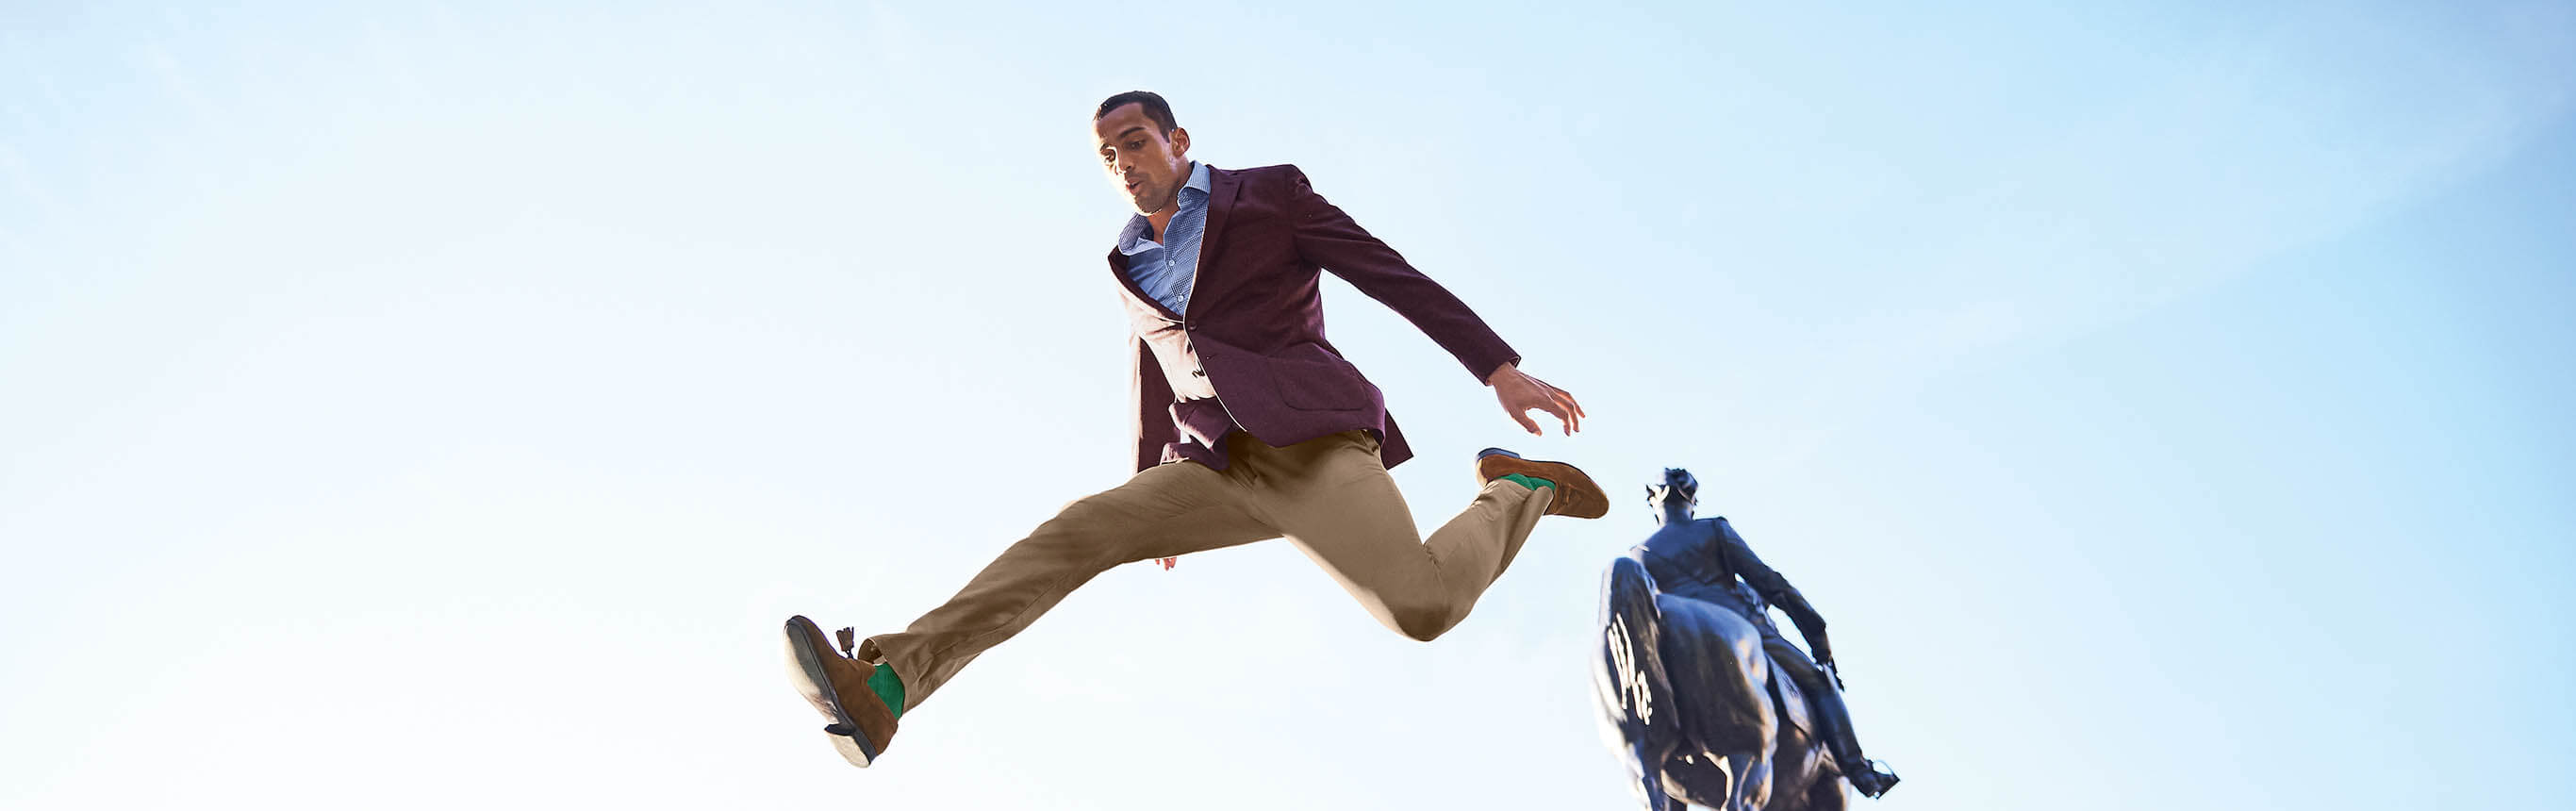 A man in a suit jumping in the air